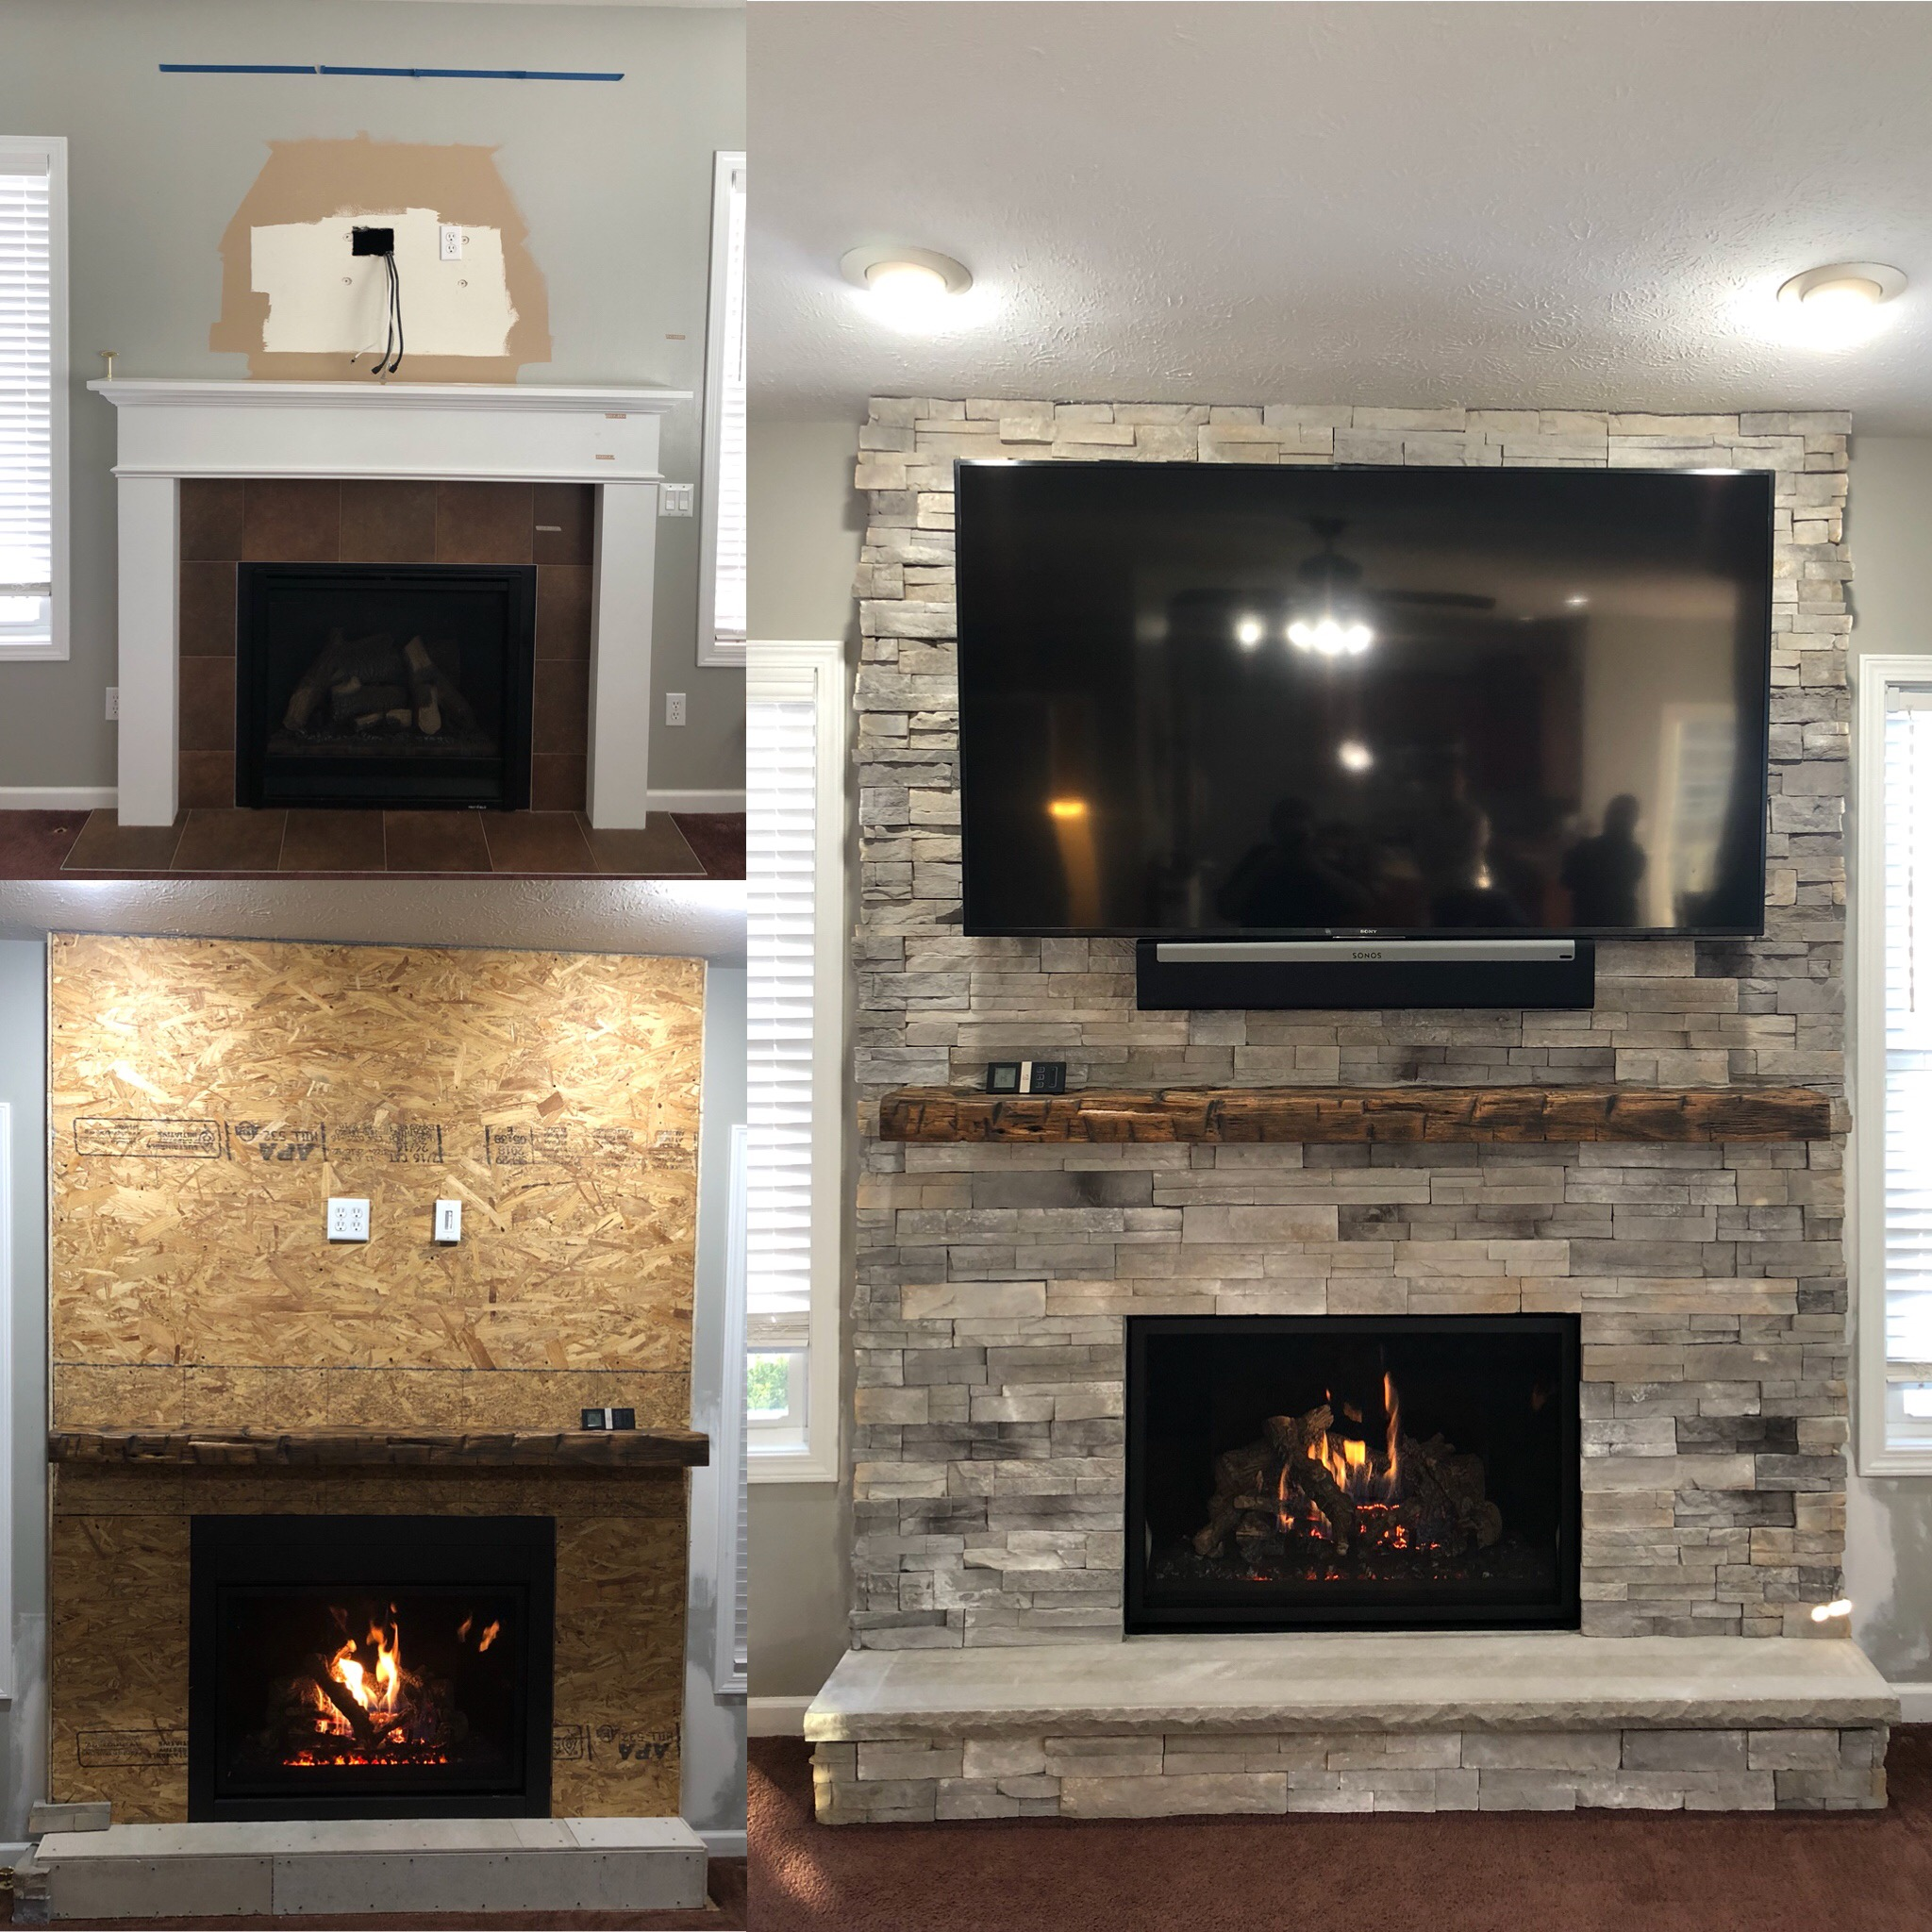 Image of a traditional 864TV 40K CleanFace gas fireplace by Fireplace Xtrodinair featuring rustic stonework facing.